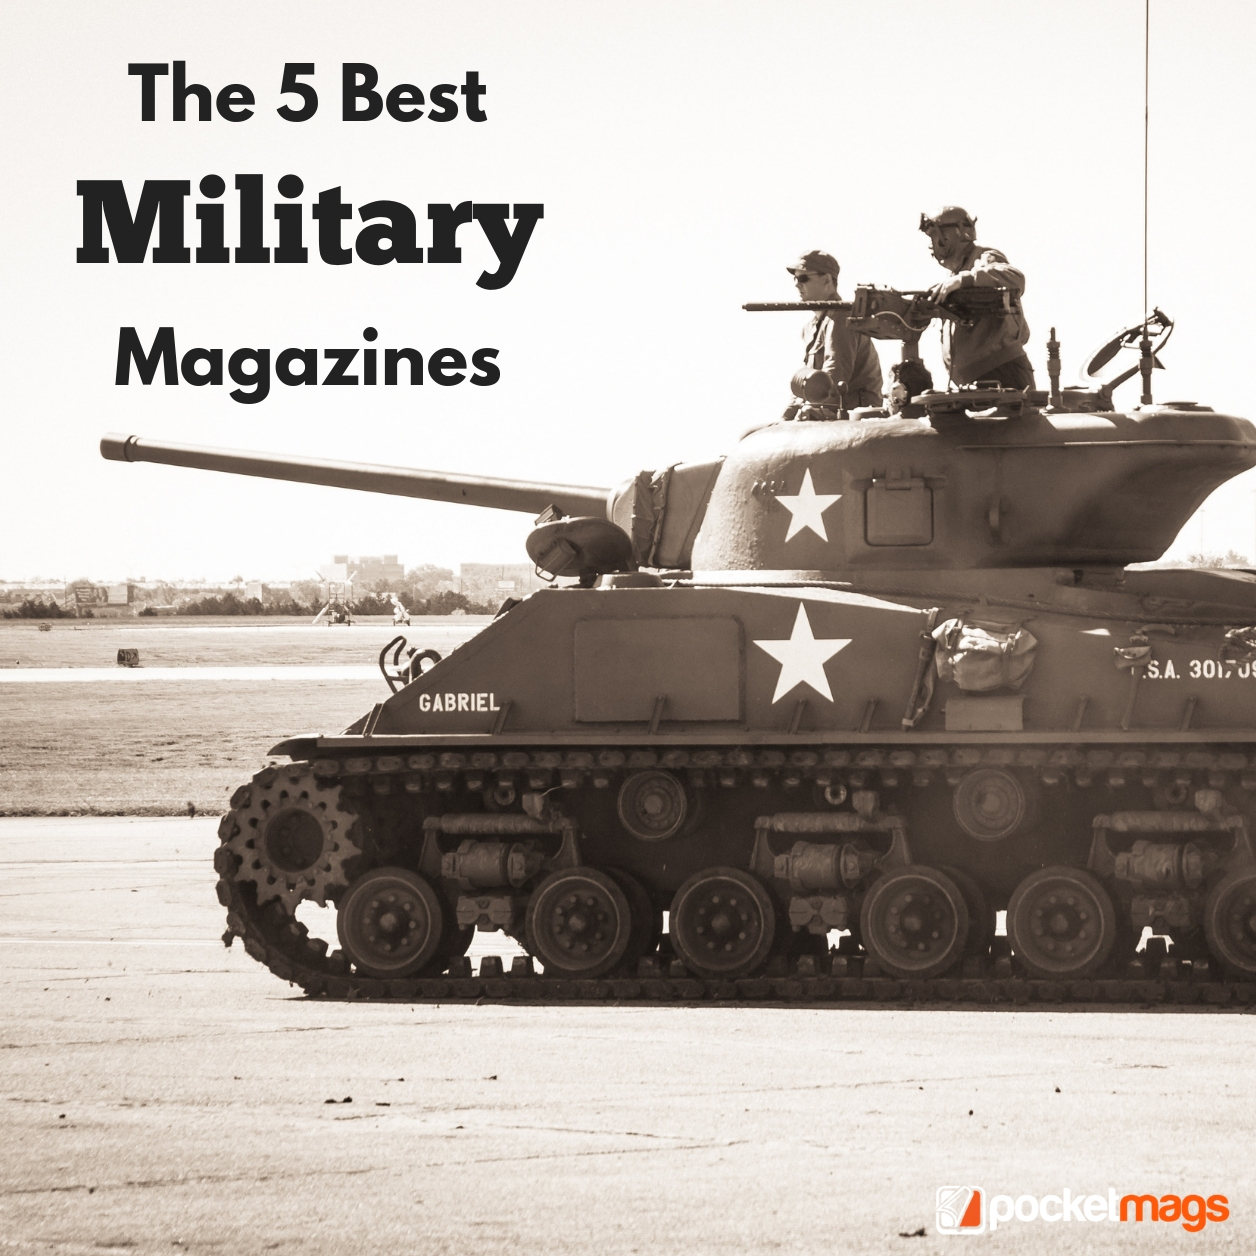 The 5 Best Military Magazines